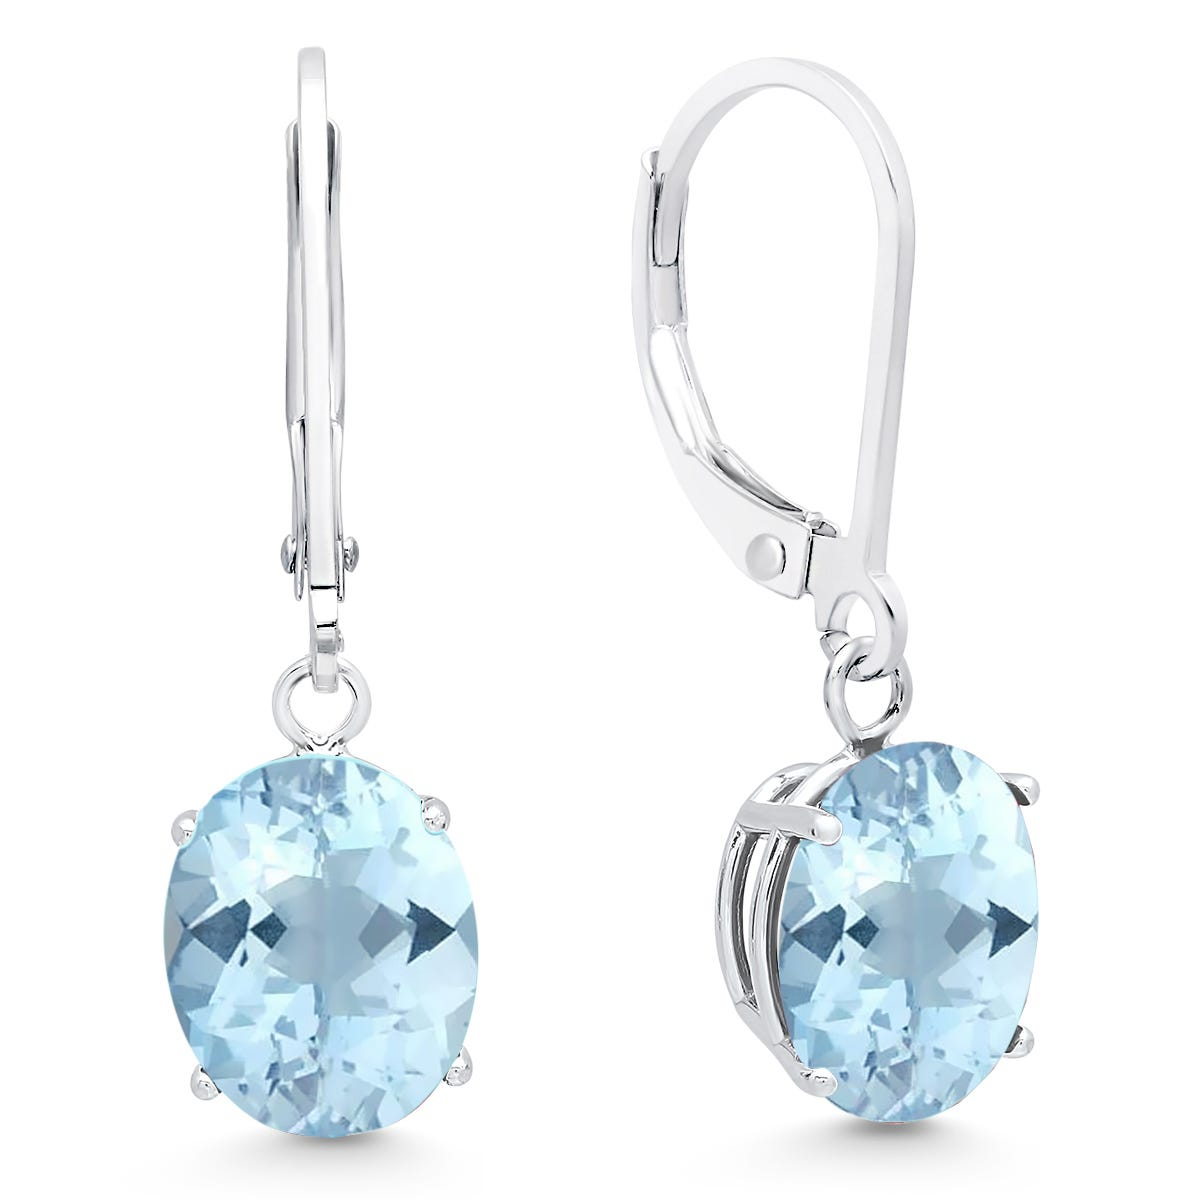 Aquamarine Oval Dangle Leverback Earrings in 14k White Gold